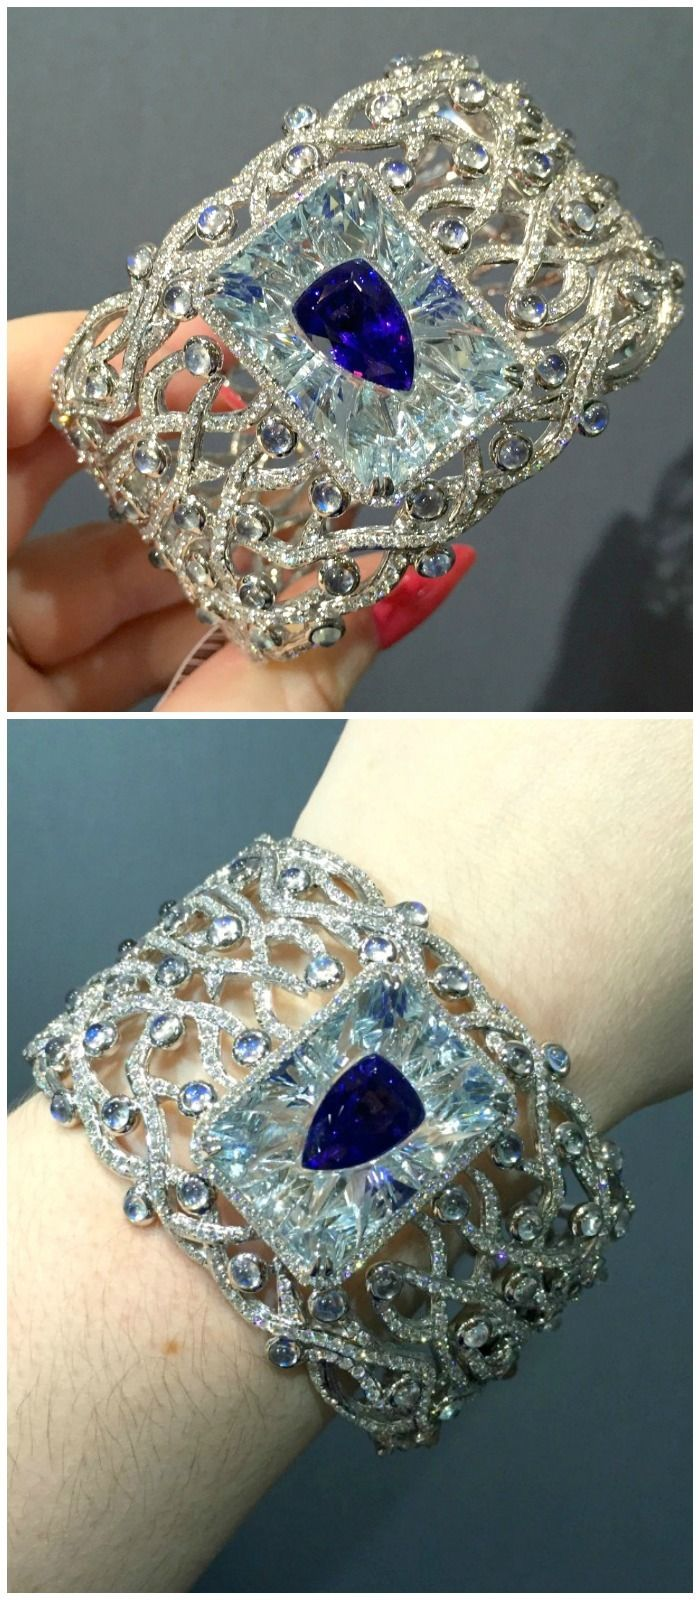 This Yael Designs bangle features a 7 carat tanzanite invisibly set inside a 26 ...